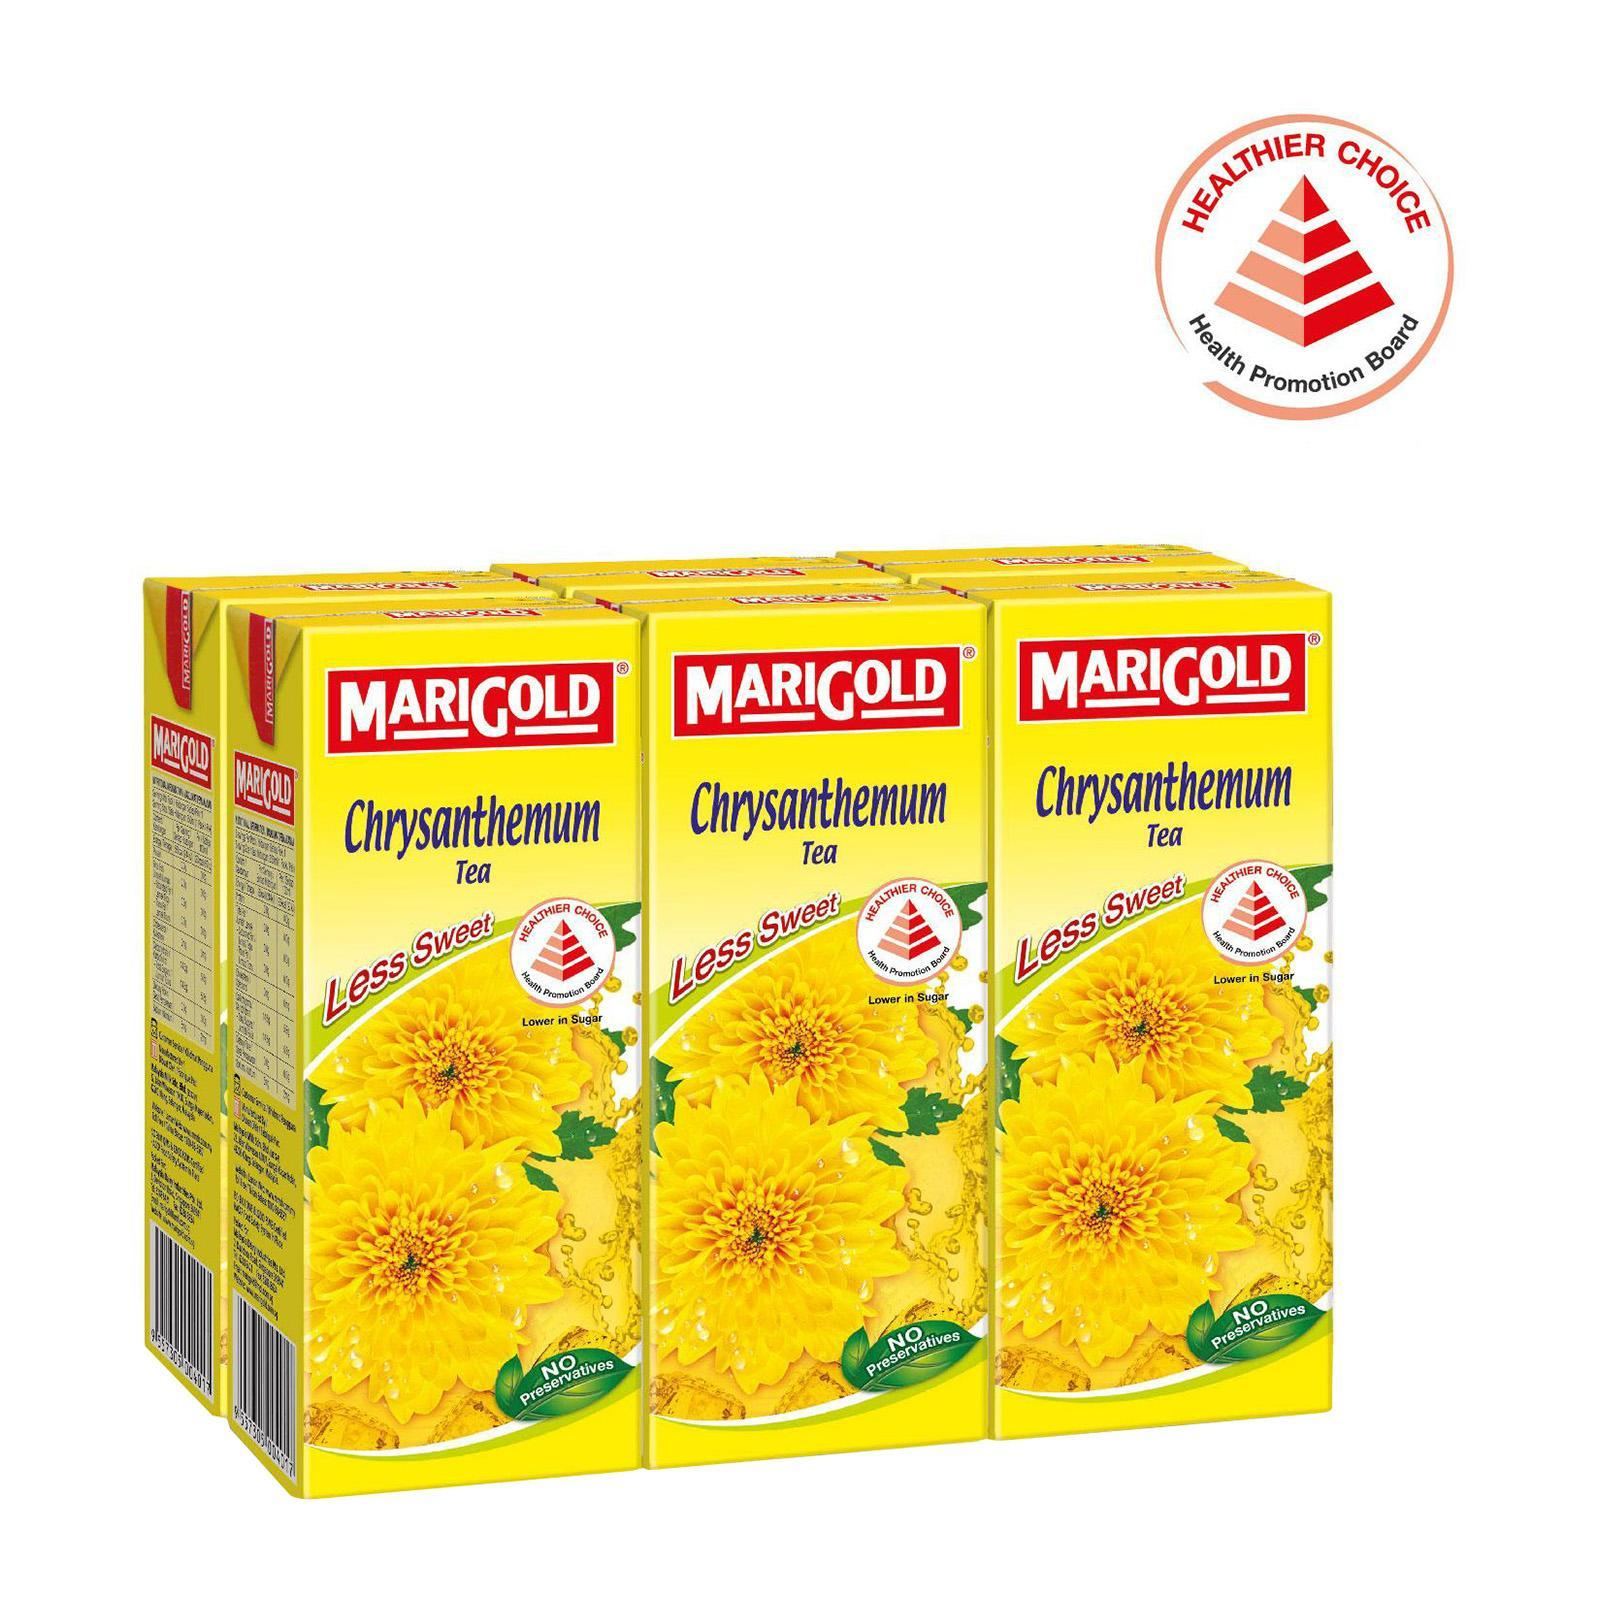 MARIGOLD Chrysanthemum Tea - Less Sweet 6sX250ml